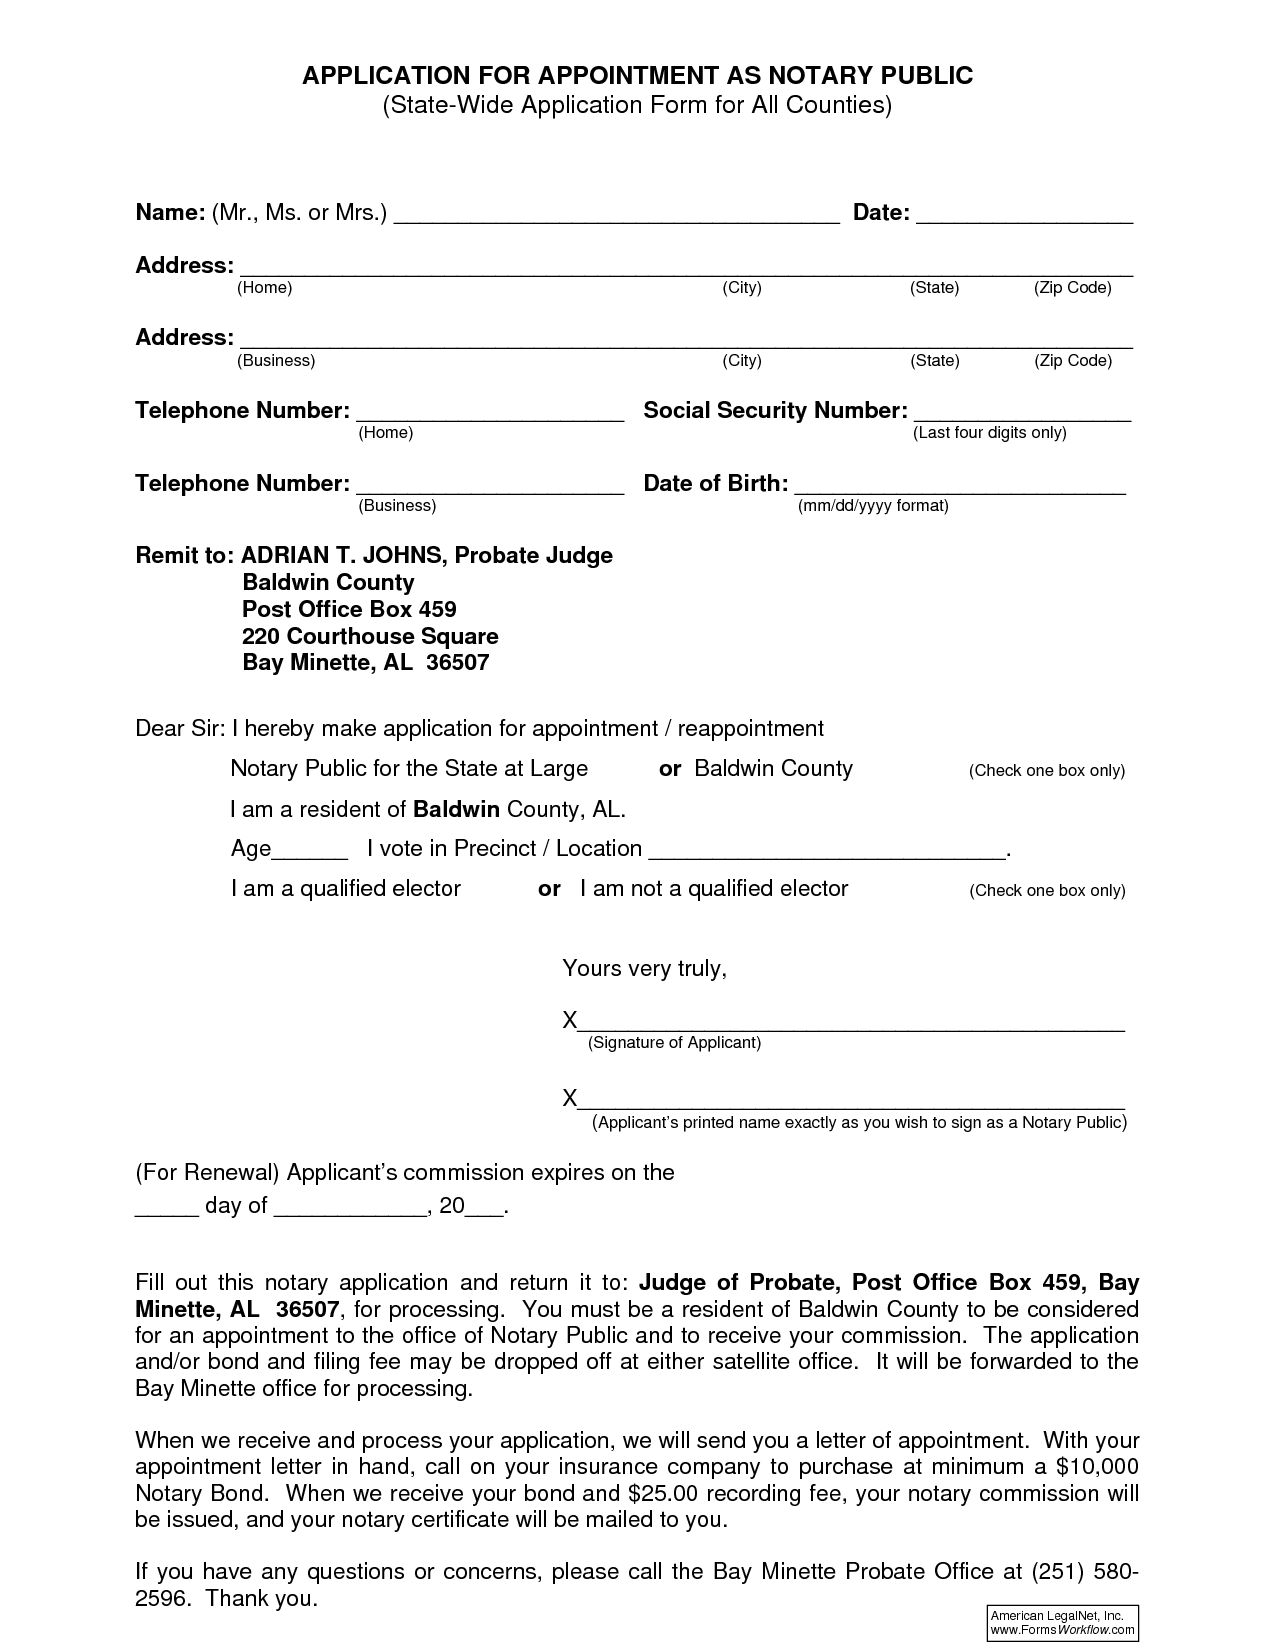 Notary Public Application Form Alabama